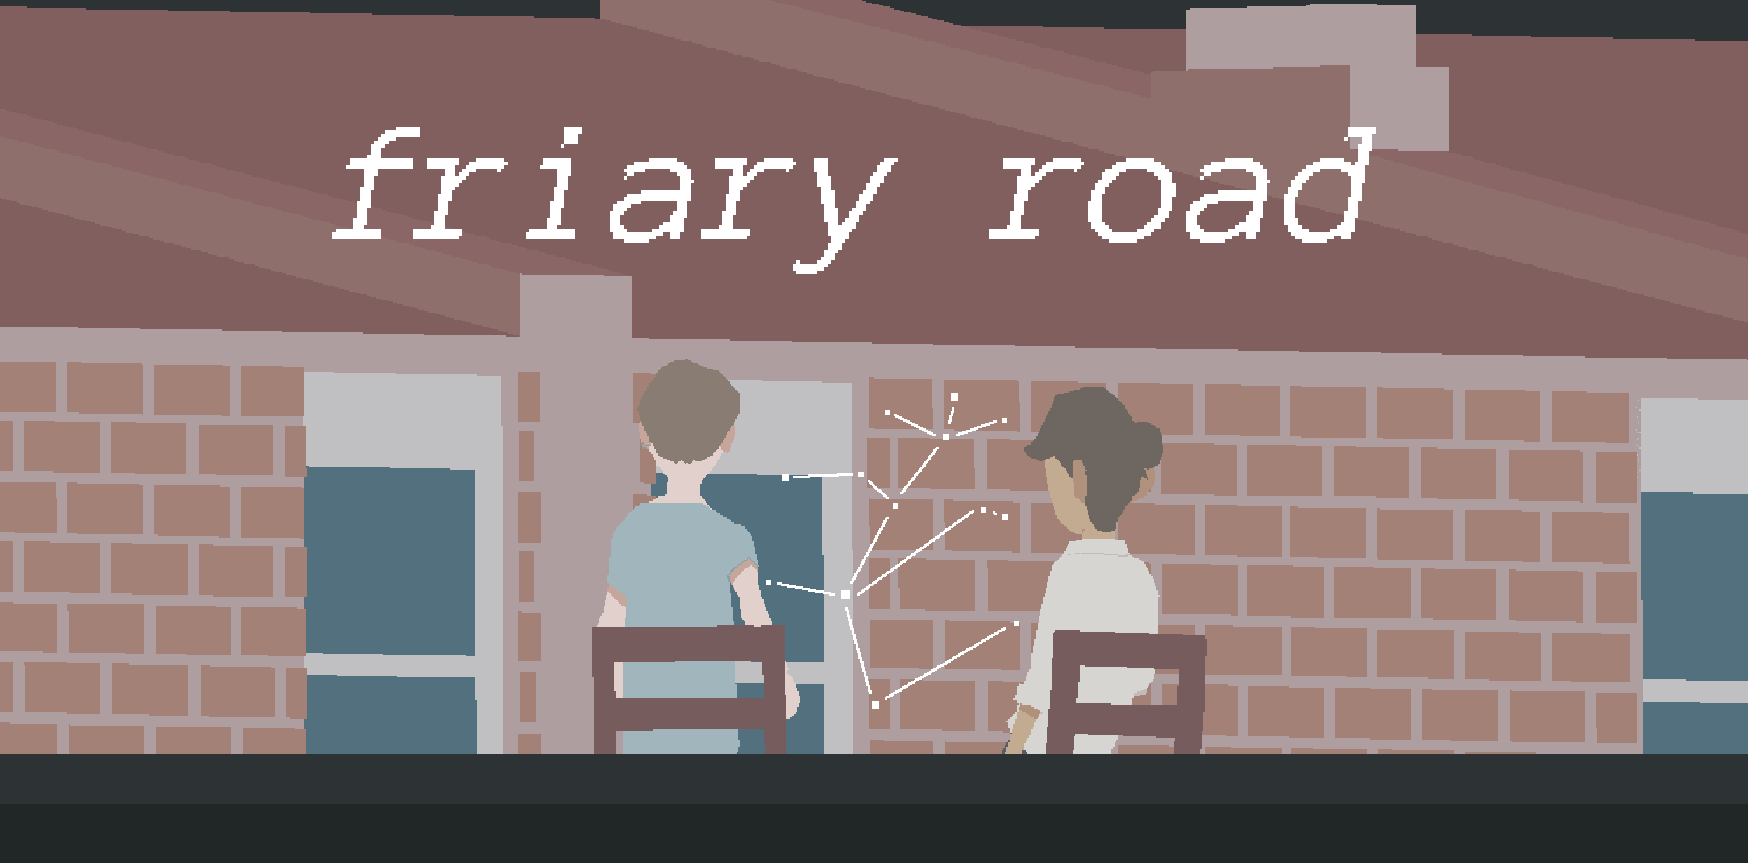 Friary Road (Fermi Paradox Game Jam Version)